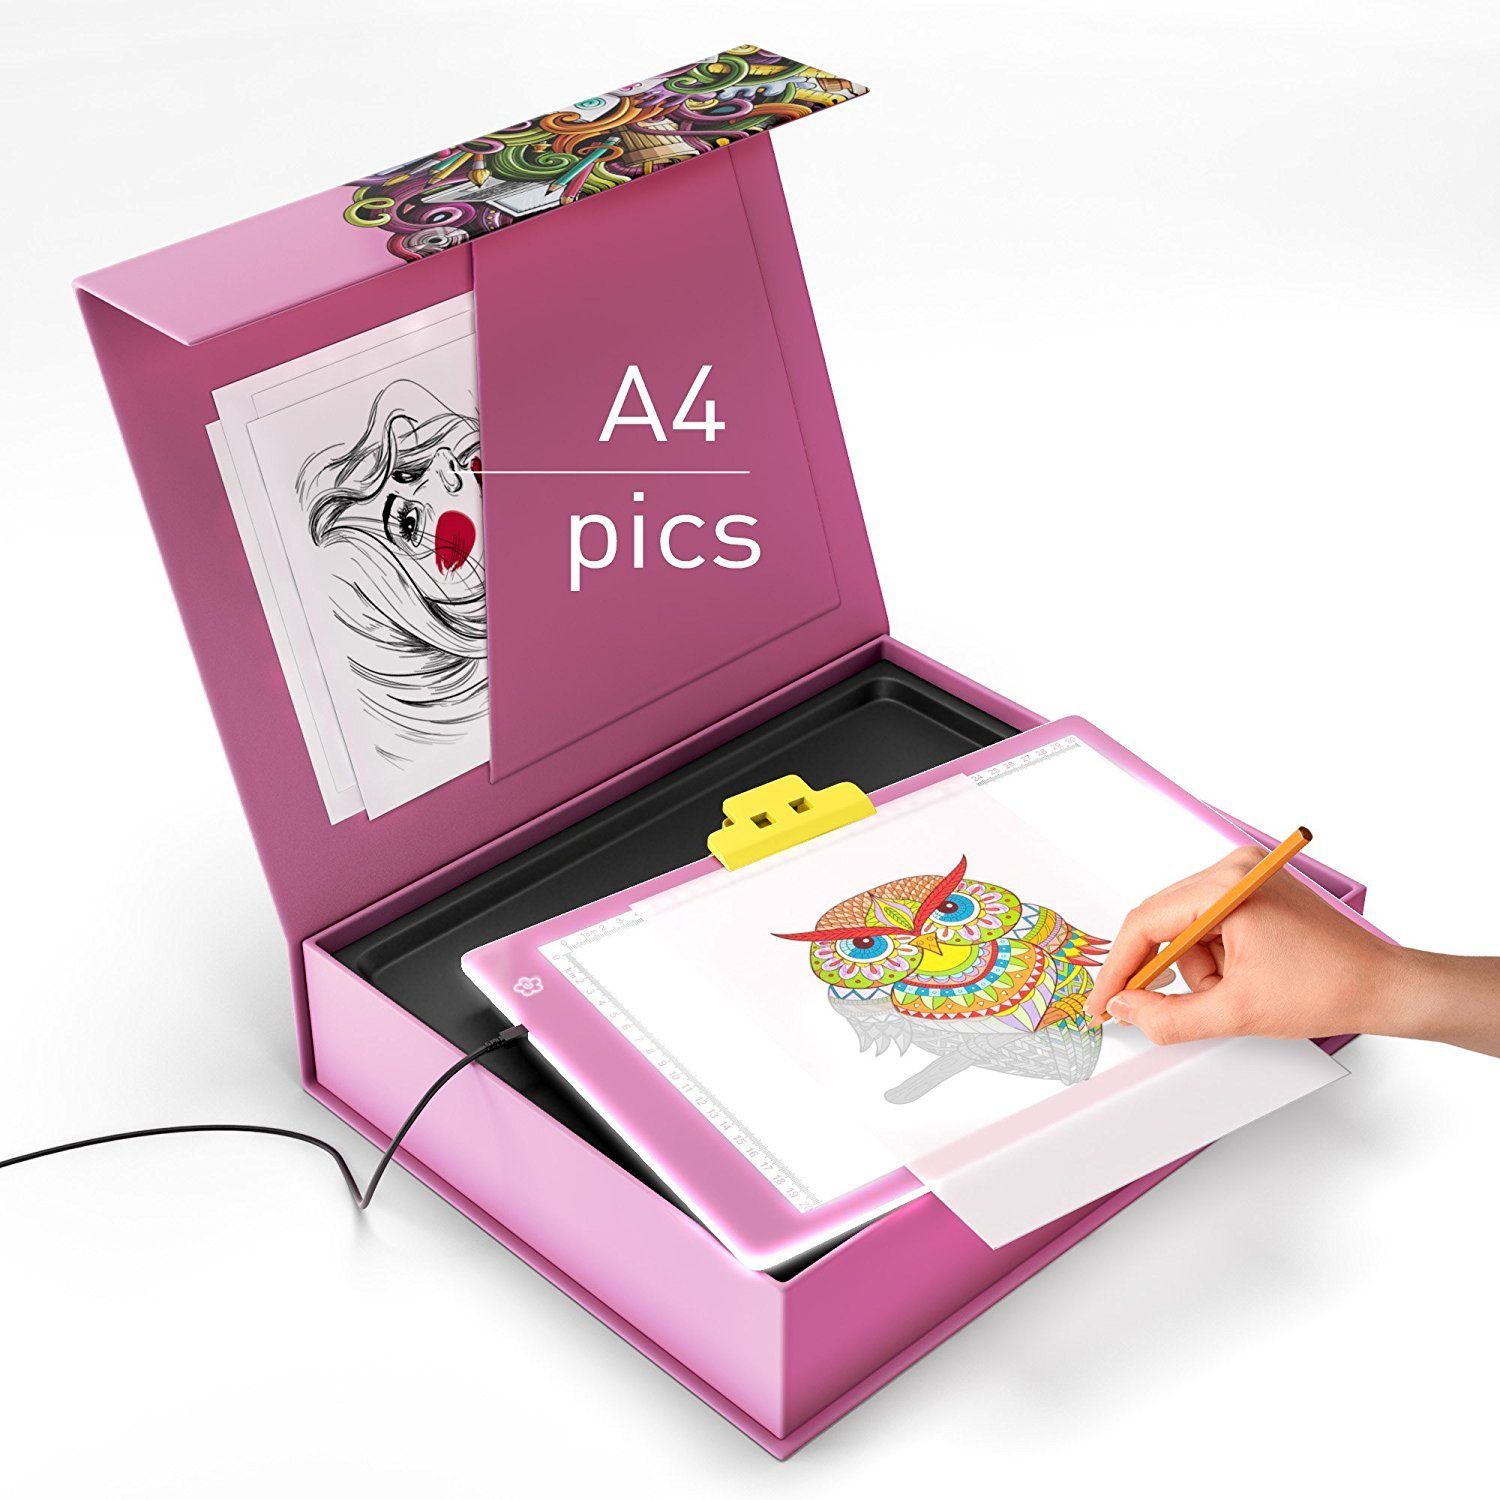 LED Light Box - LED Tracing Pad - LED Light Board - A4 USB Power Ultra Thin Portable Tracing Light Box Pad Board Table